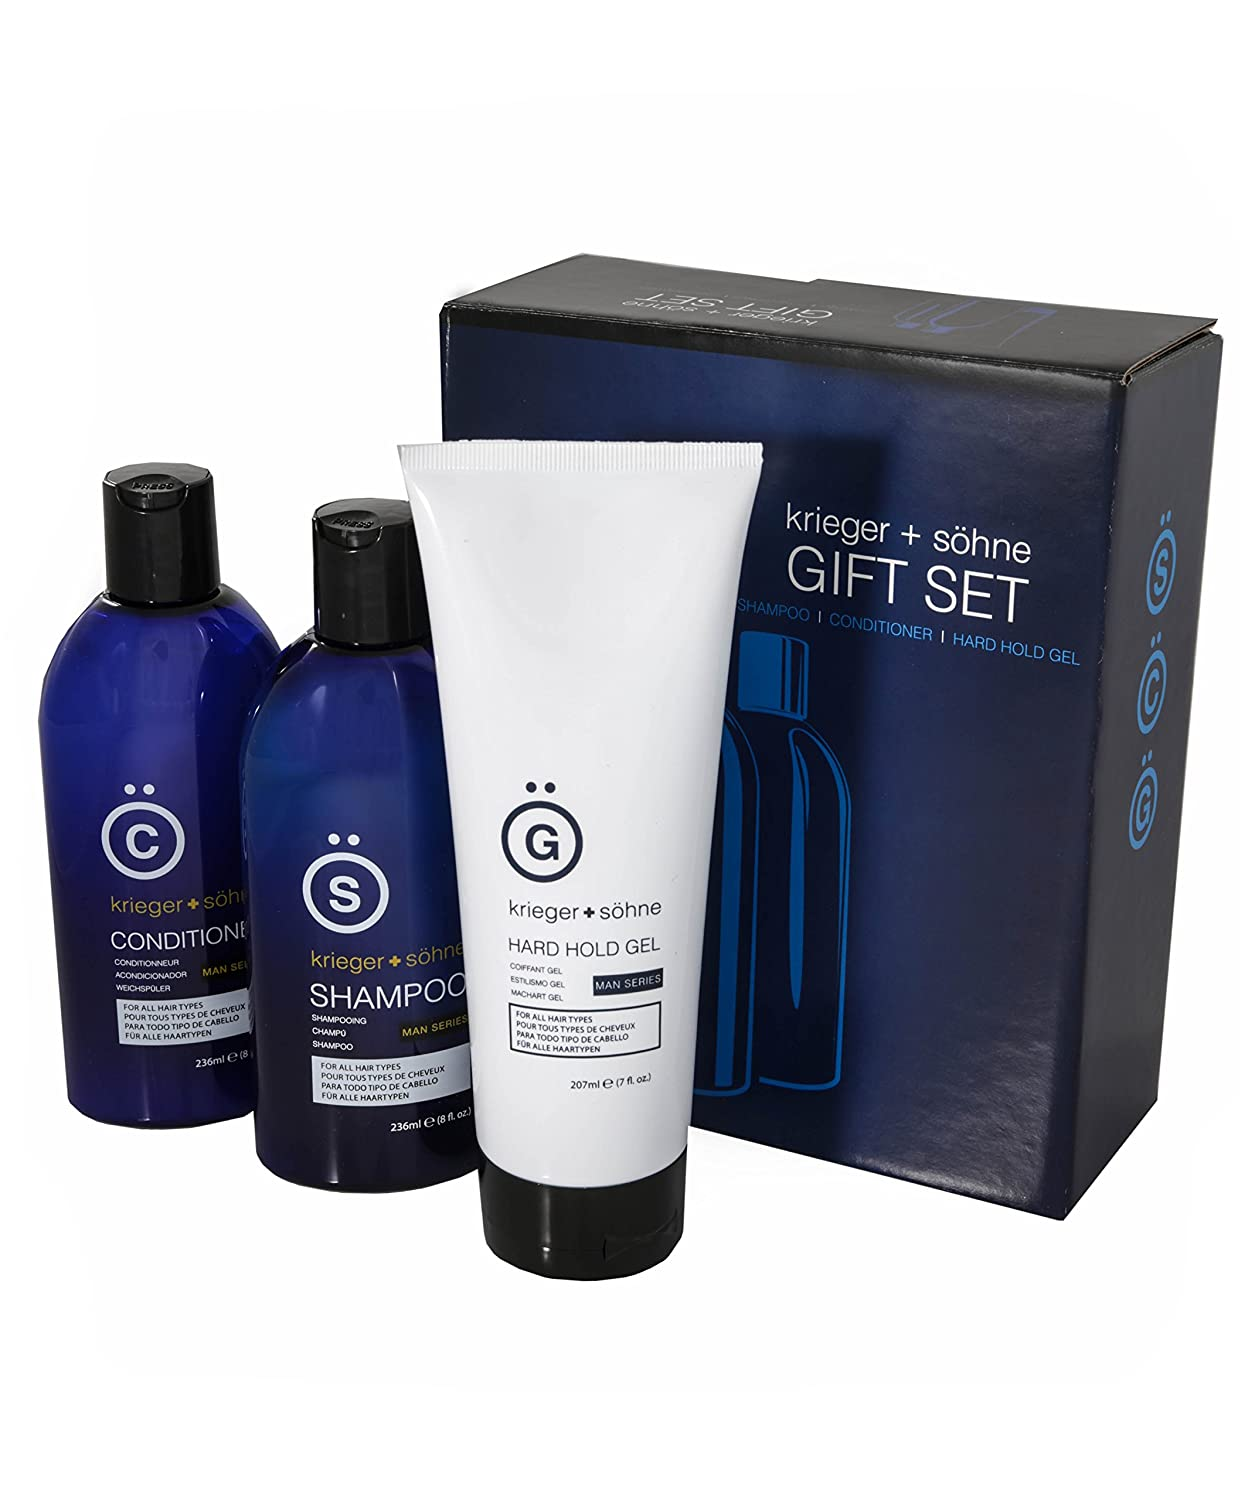 Best Gift Set For Men w/ Top Styling Products- Includes k+s Man Series Tea Tree Shampoo - Peppermint Oil Conditioner - Hard Hold Hair Gel - Top Ten for Birthday and a Popular Gift Men Will Love